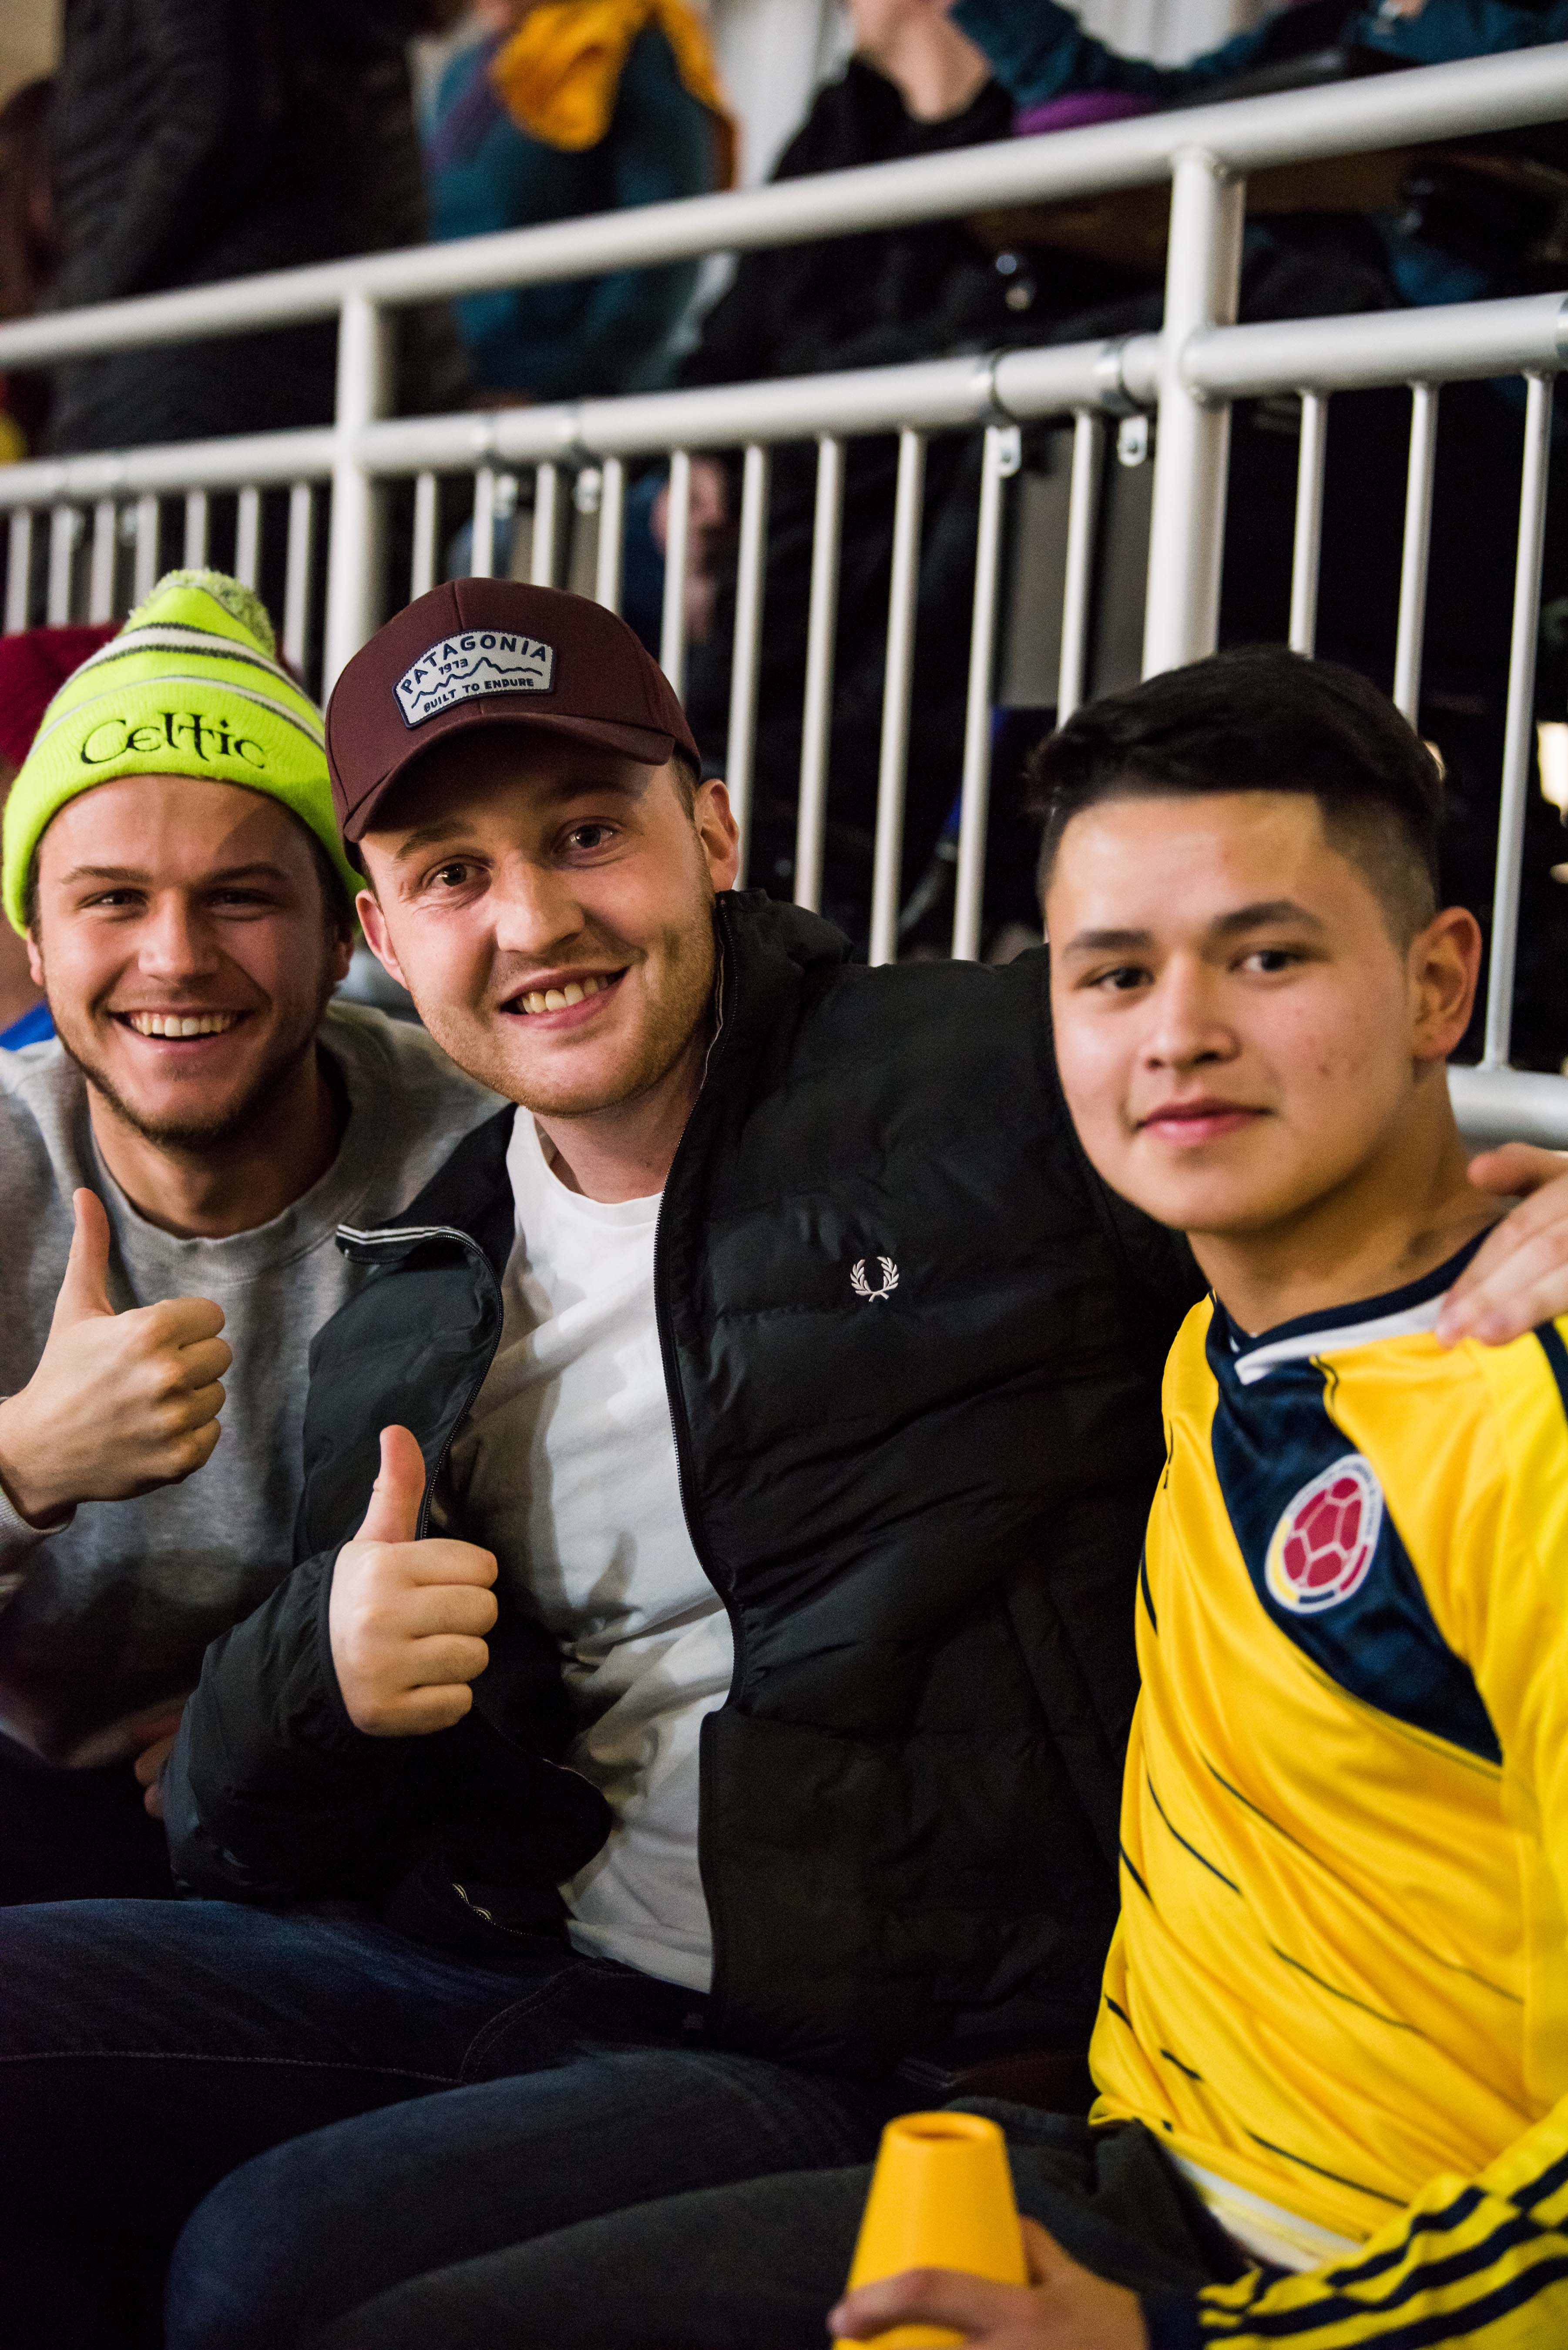 Three people in stands pose together holding up thumbs up signs